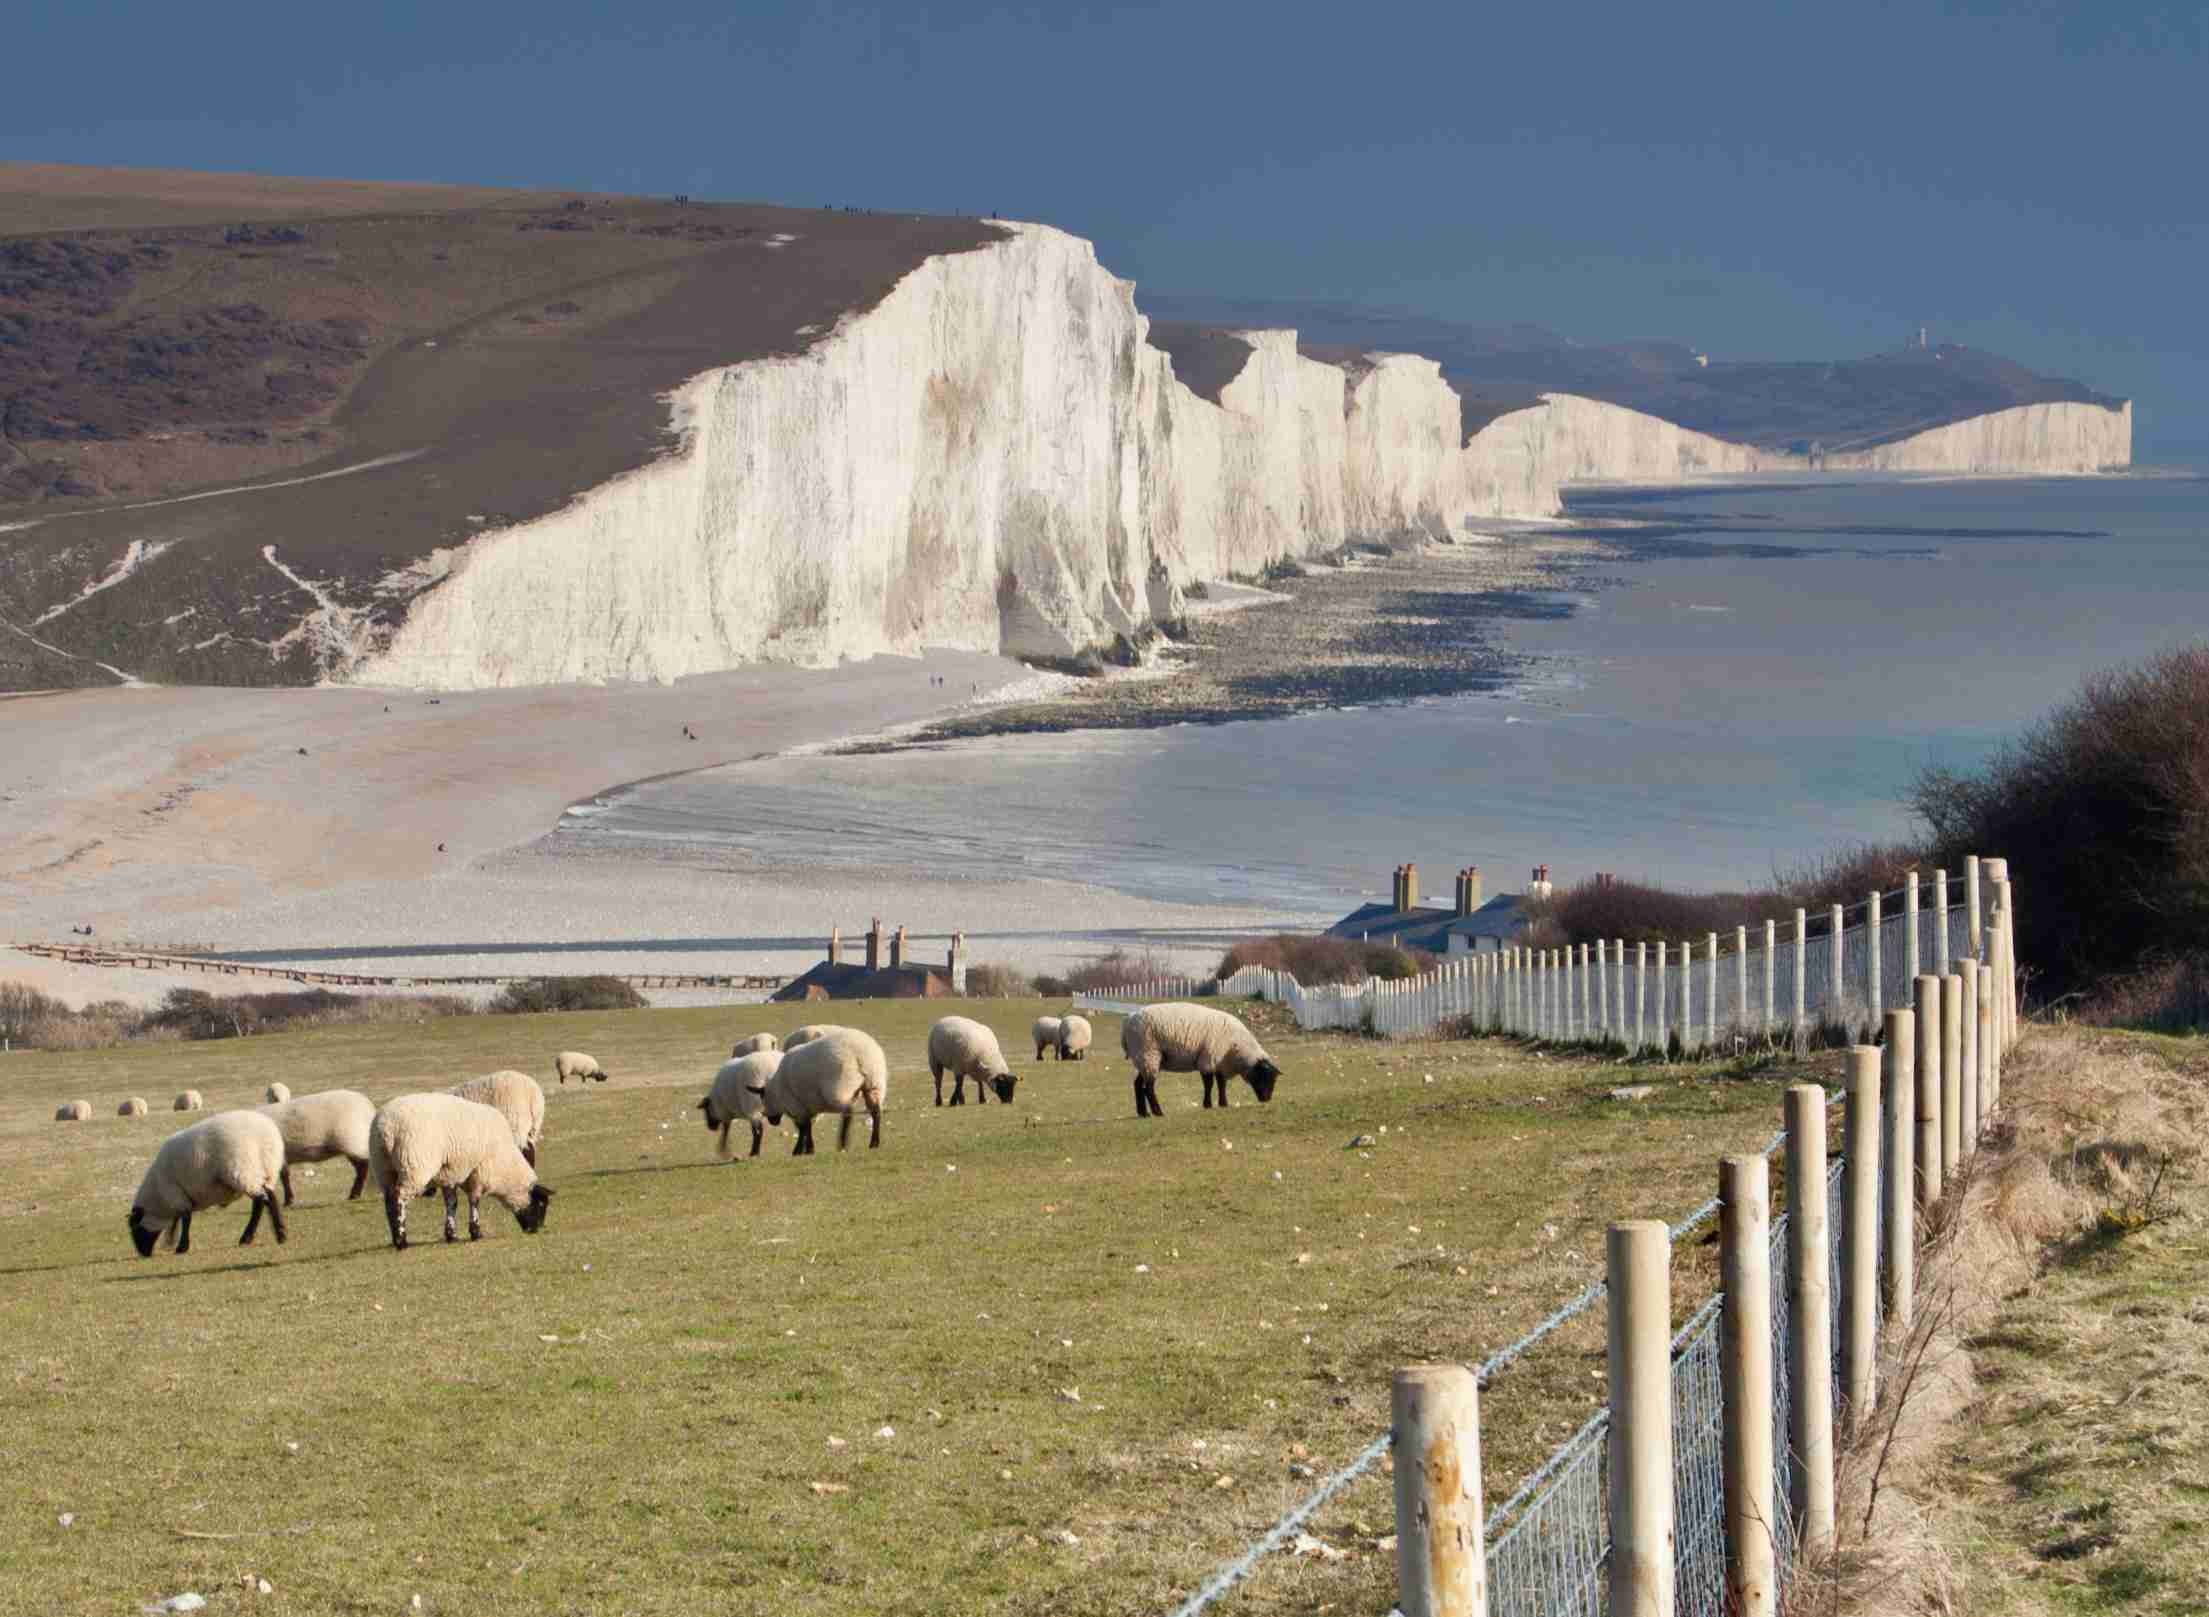 Seven Sisters cliffs seen beyond a flock of sheep in the foreground.